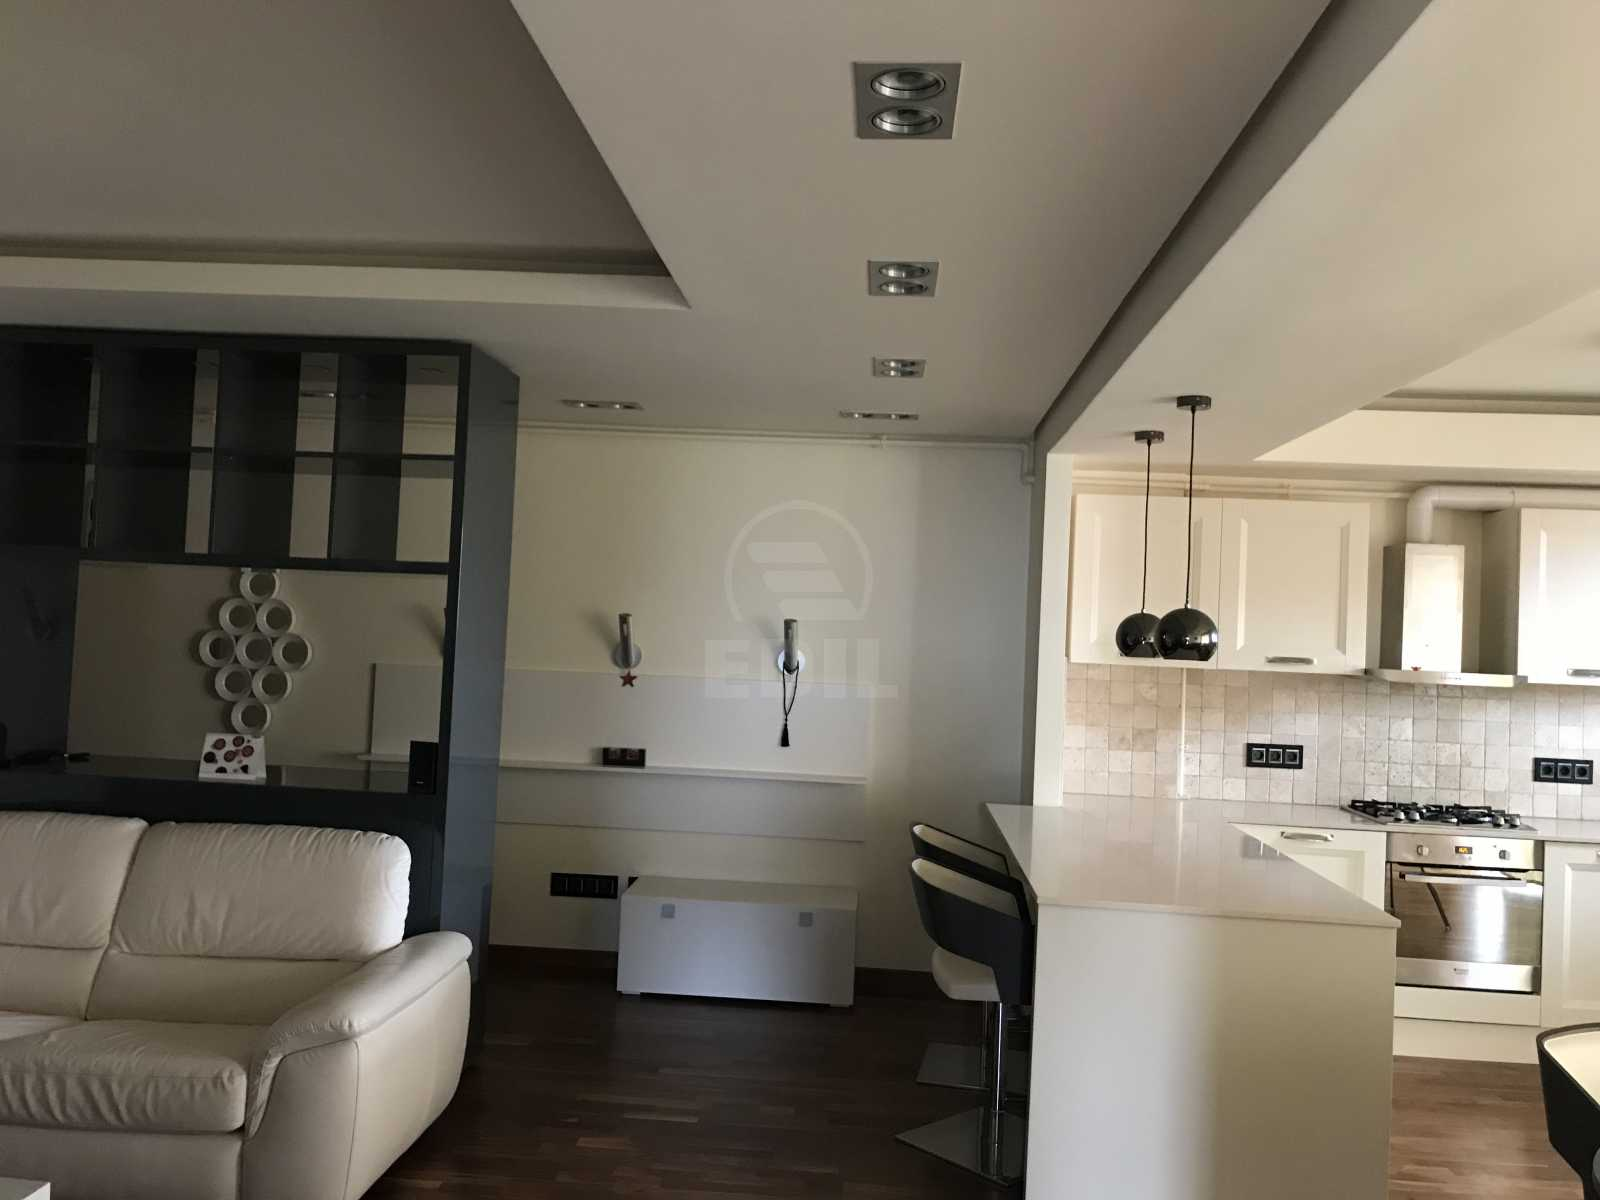 Apartment for rent 3 rooms, APCJ283584-1